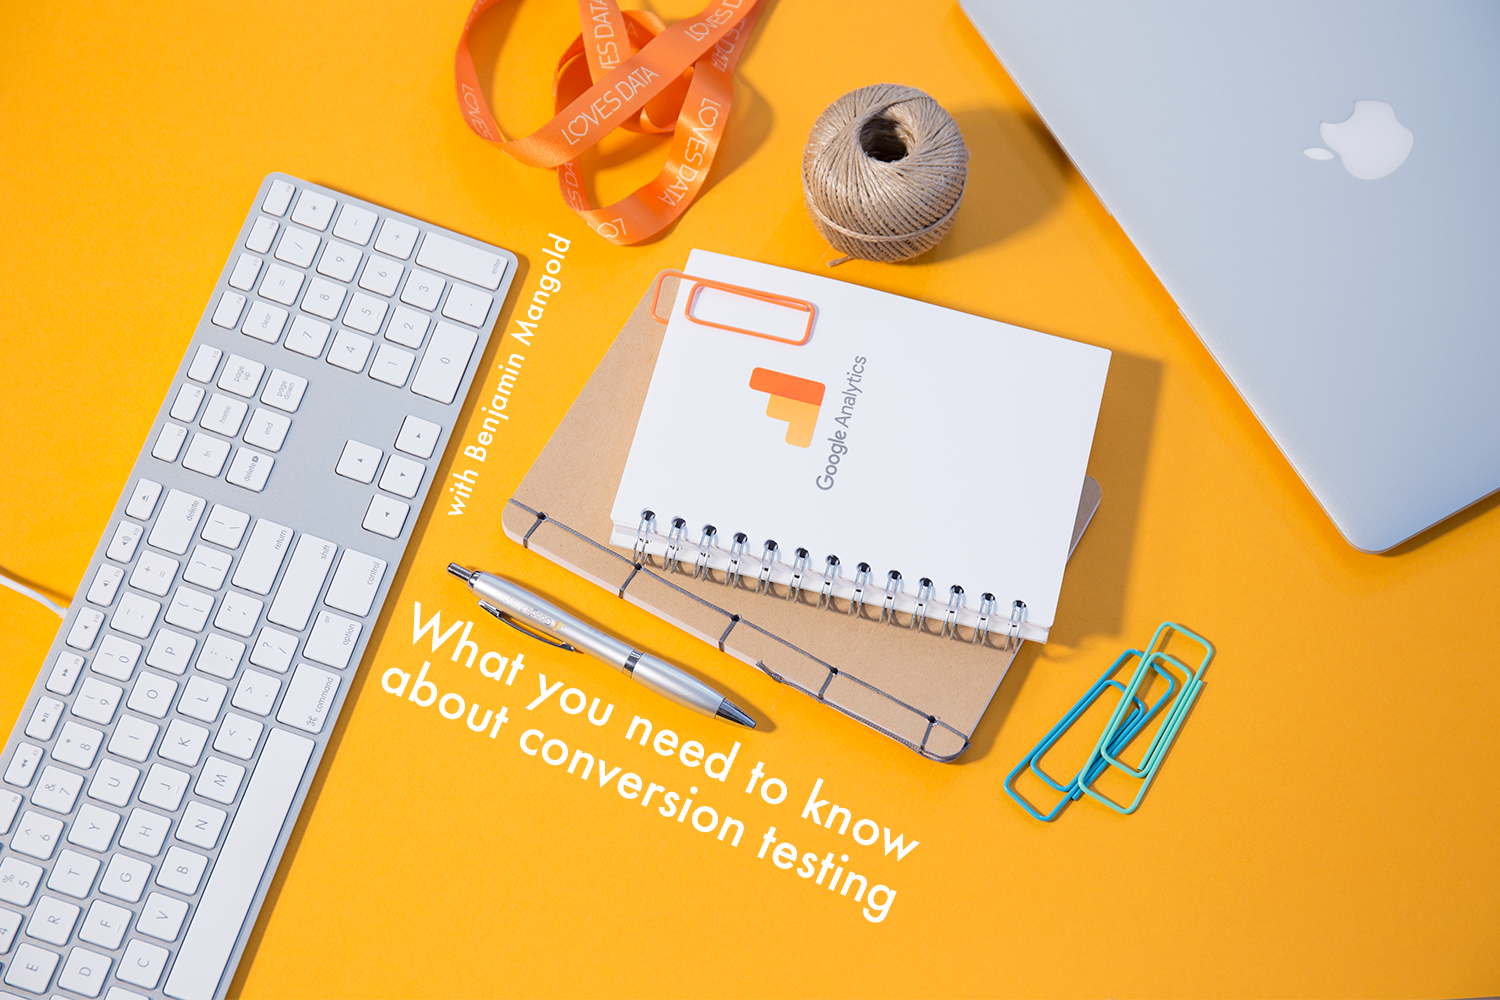 What you need to know about conversion testing